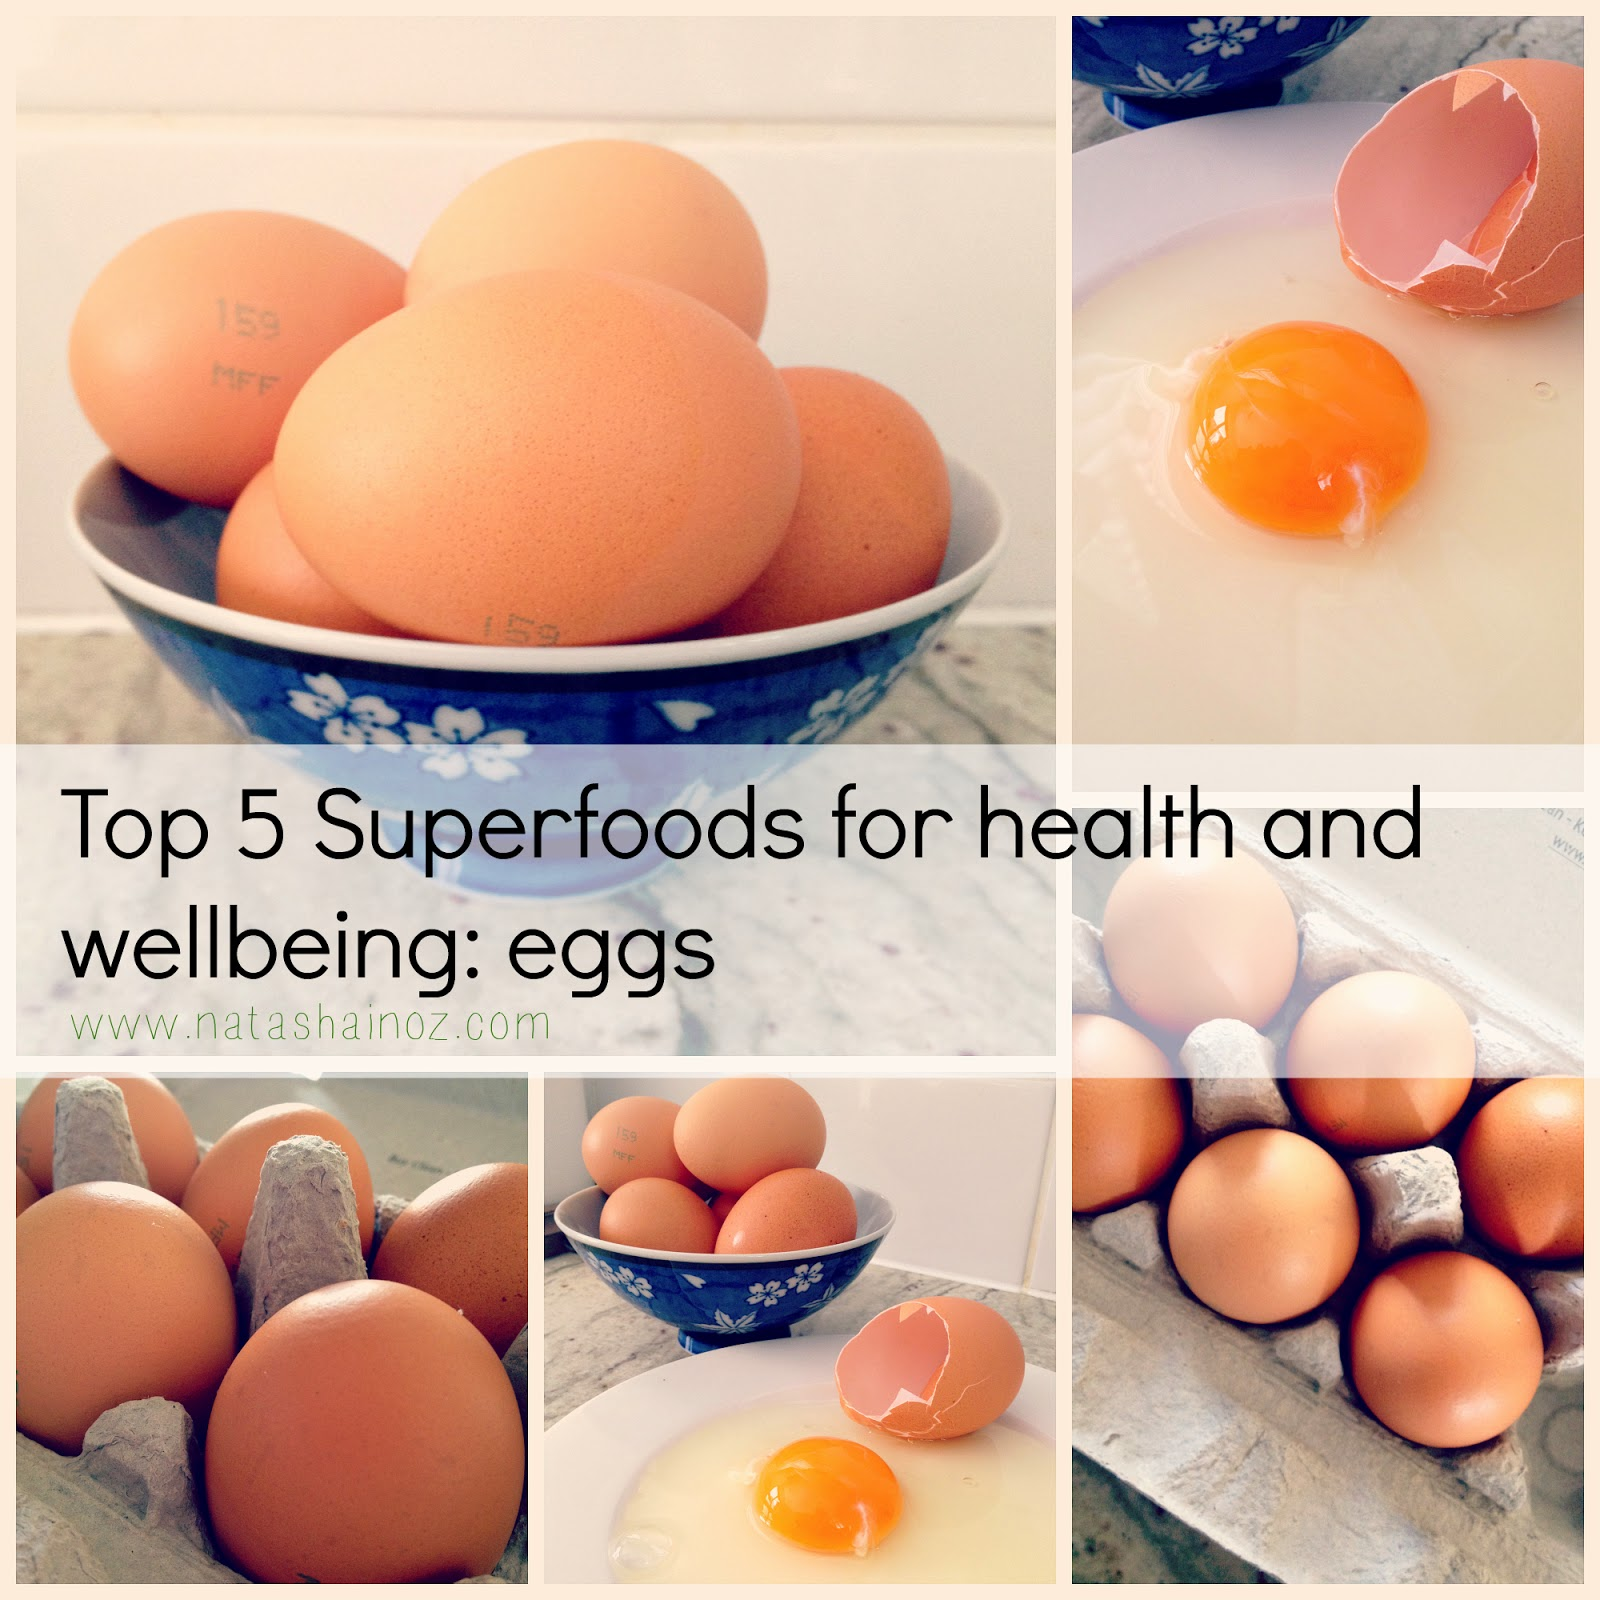 Top 5 Superfoods For Health and Wellbeing, Natasha in Oz, eggs